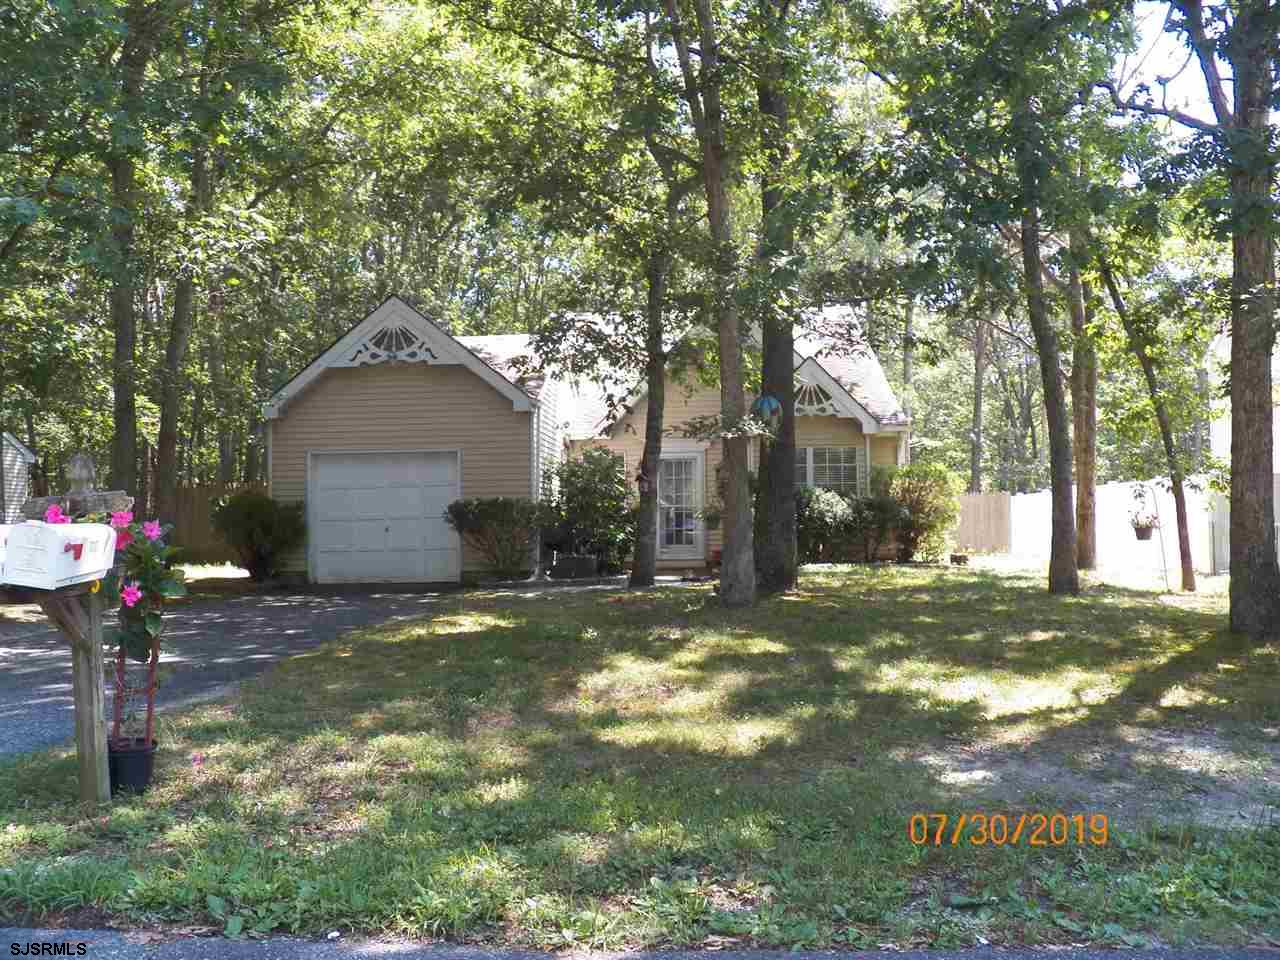 143 S Concord Ter, Galloway Township, NJ, 08205